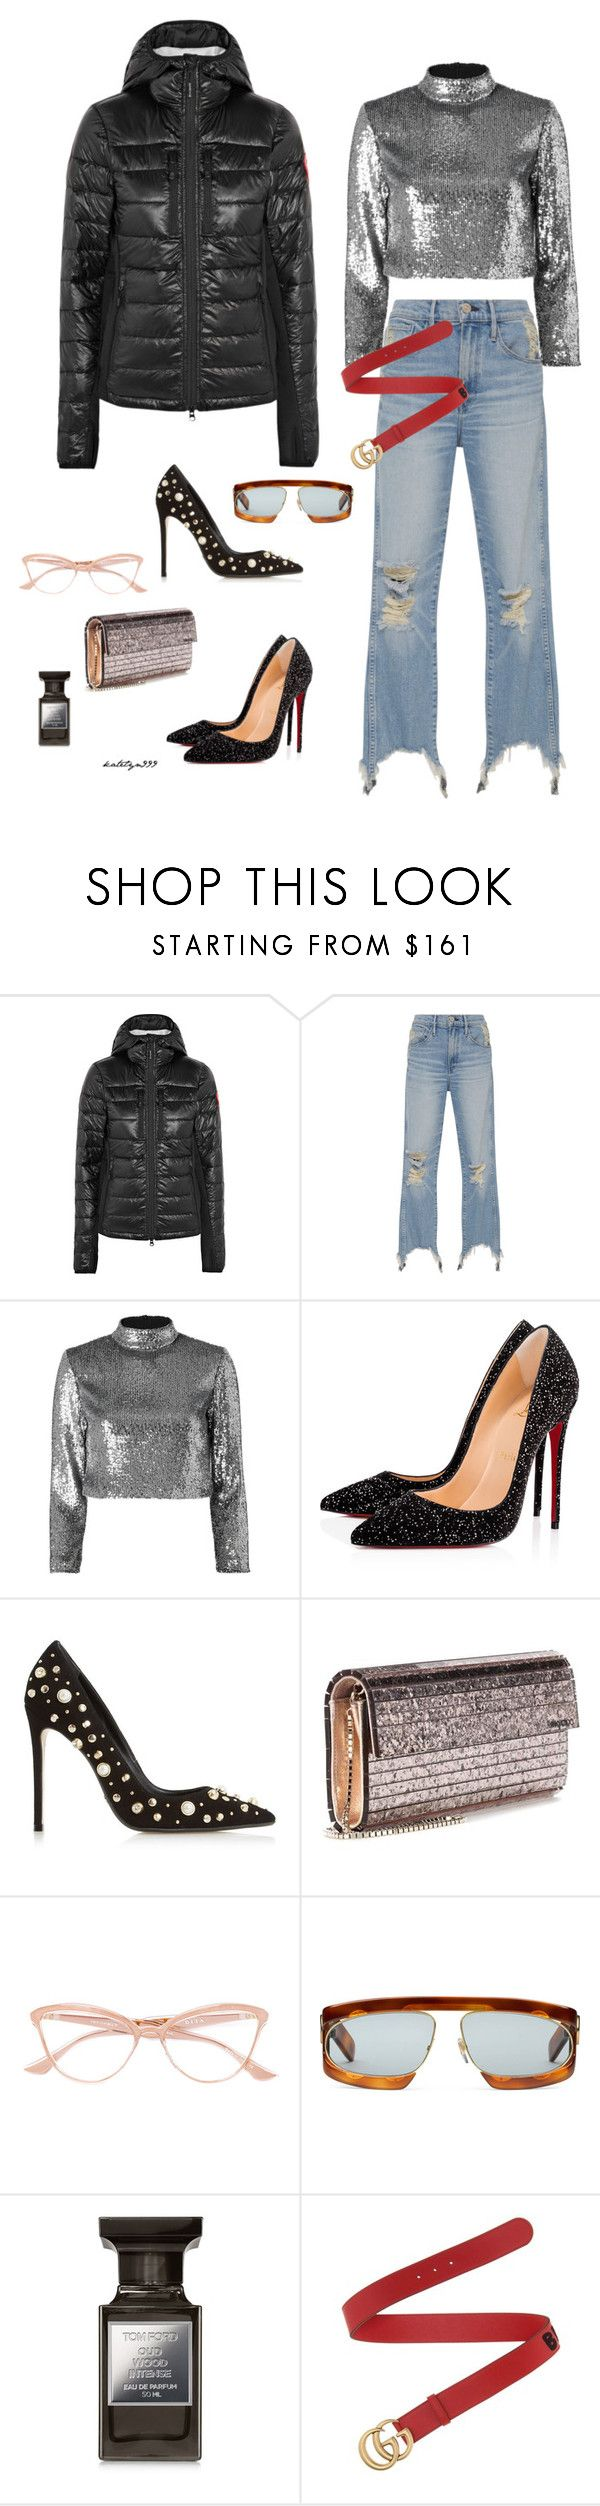 """""""I love it"""" by katelyn999 ❤ liked on Polyvore featuring Canada Goose, 3x1, A.L.C., Christian Louboutin, Dune Black, Jimmy Choo, Dita, Gucci and Tom Ford"""